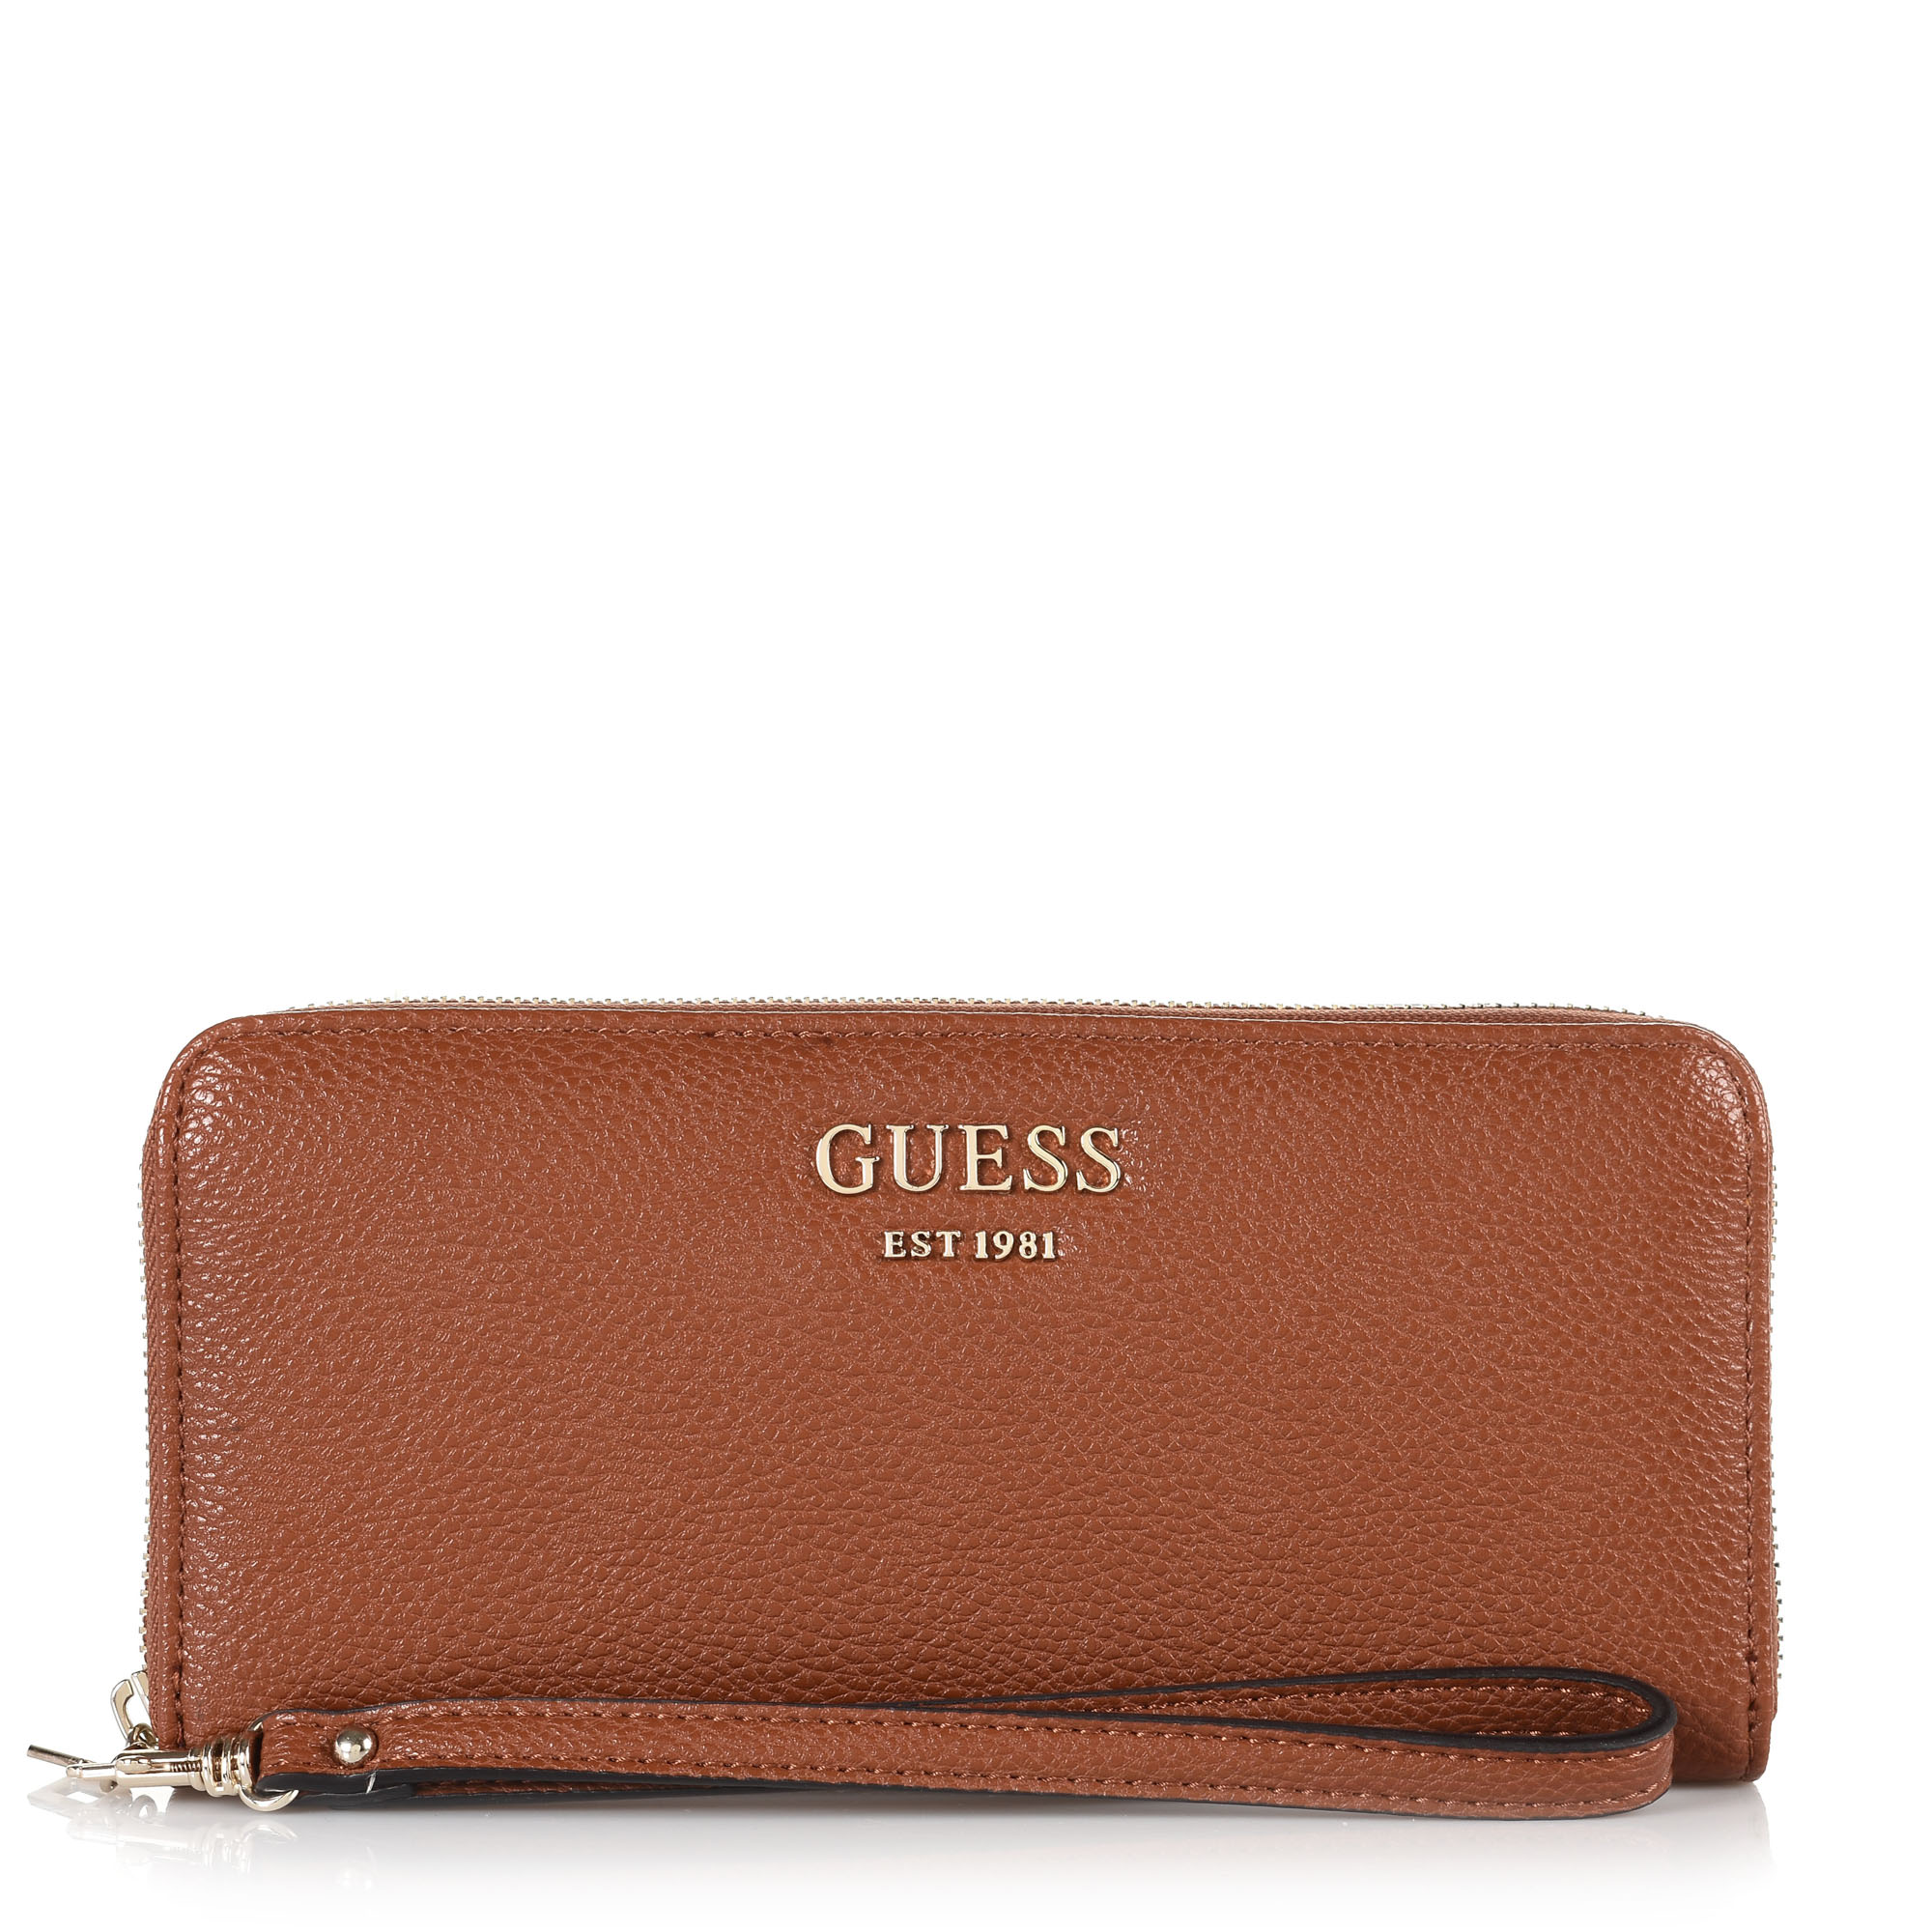 182cb26223 Brand Bags Πορτοφόλι Κασετίνα Guess Vikky SLG SWVG699546